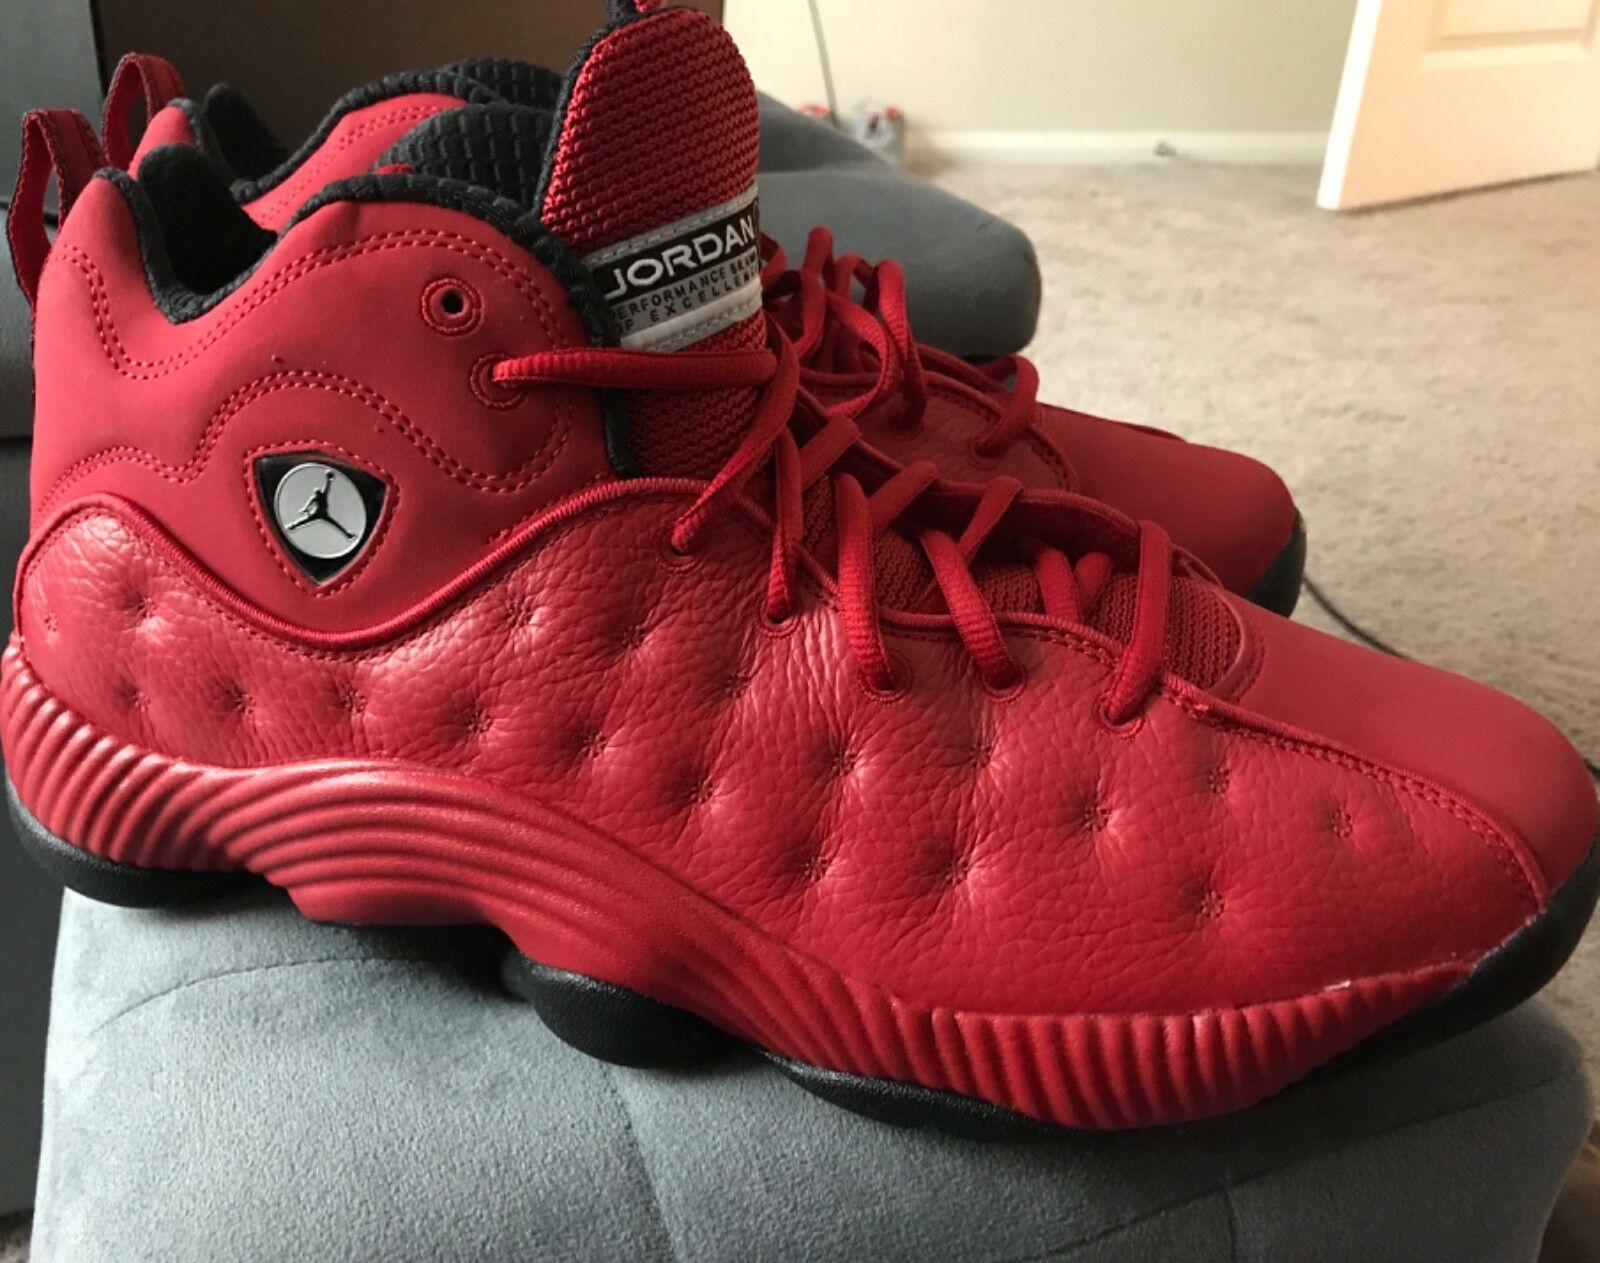 819175-602 red team jordan without box